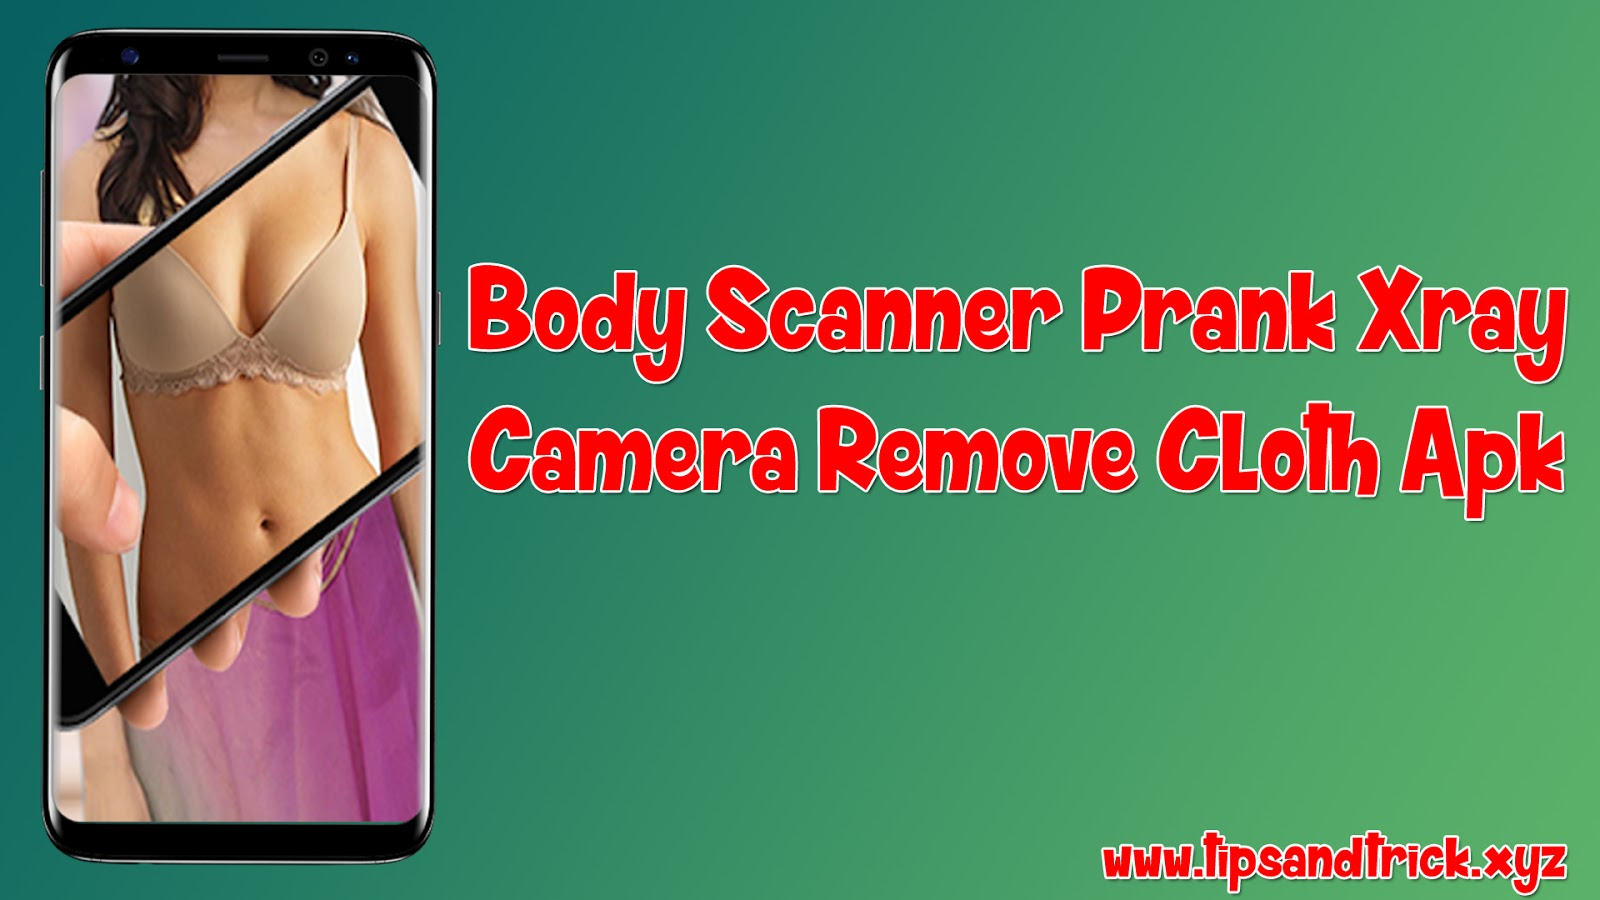 Body Scanner Prank Xray Camera Remove Cloth Apk Download - Tips And